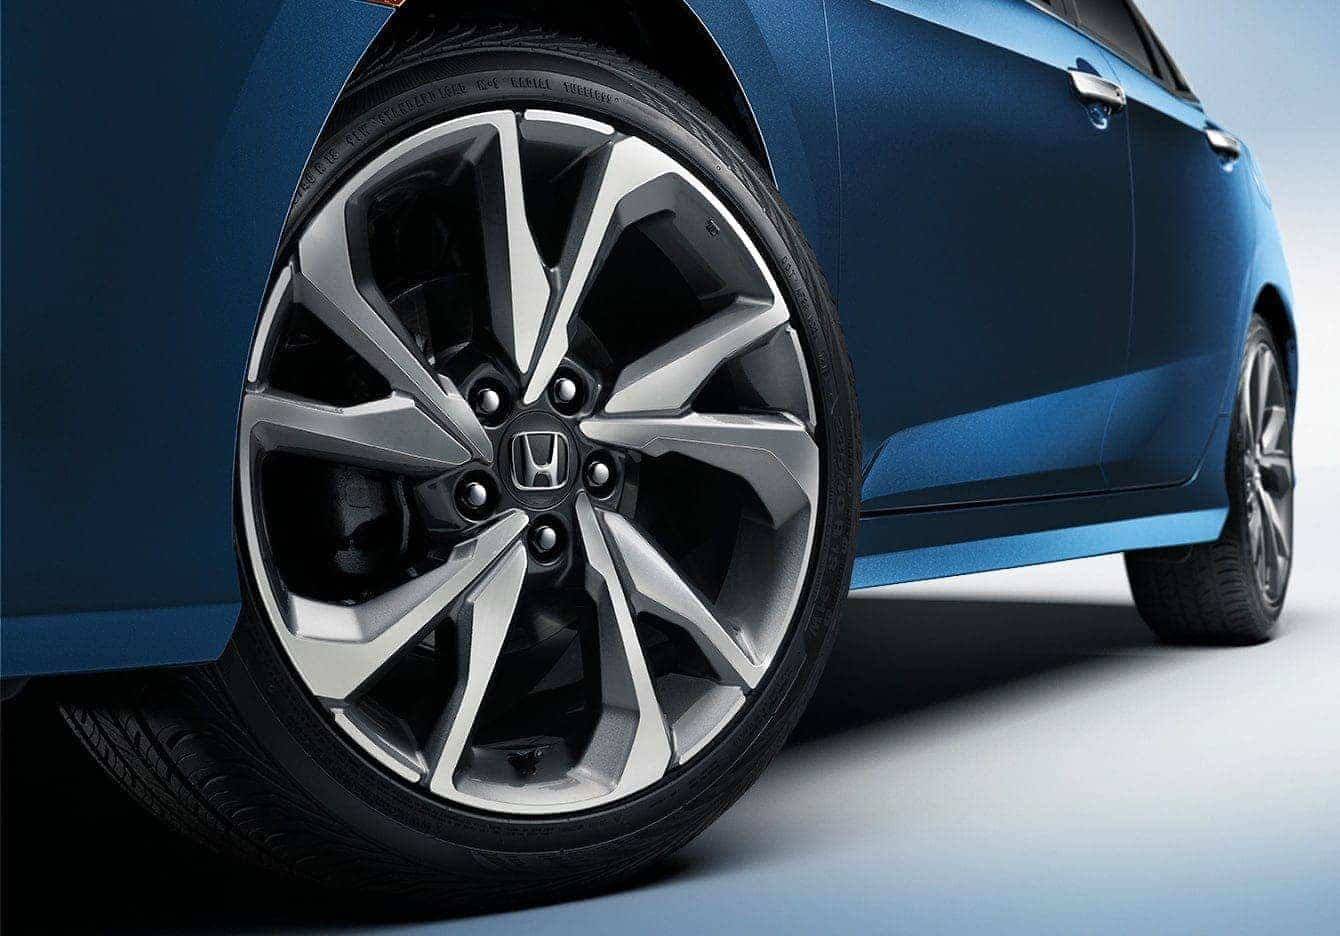 2019 Civic Alloy Wheels